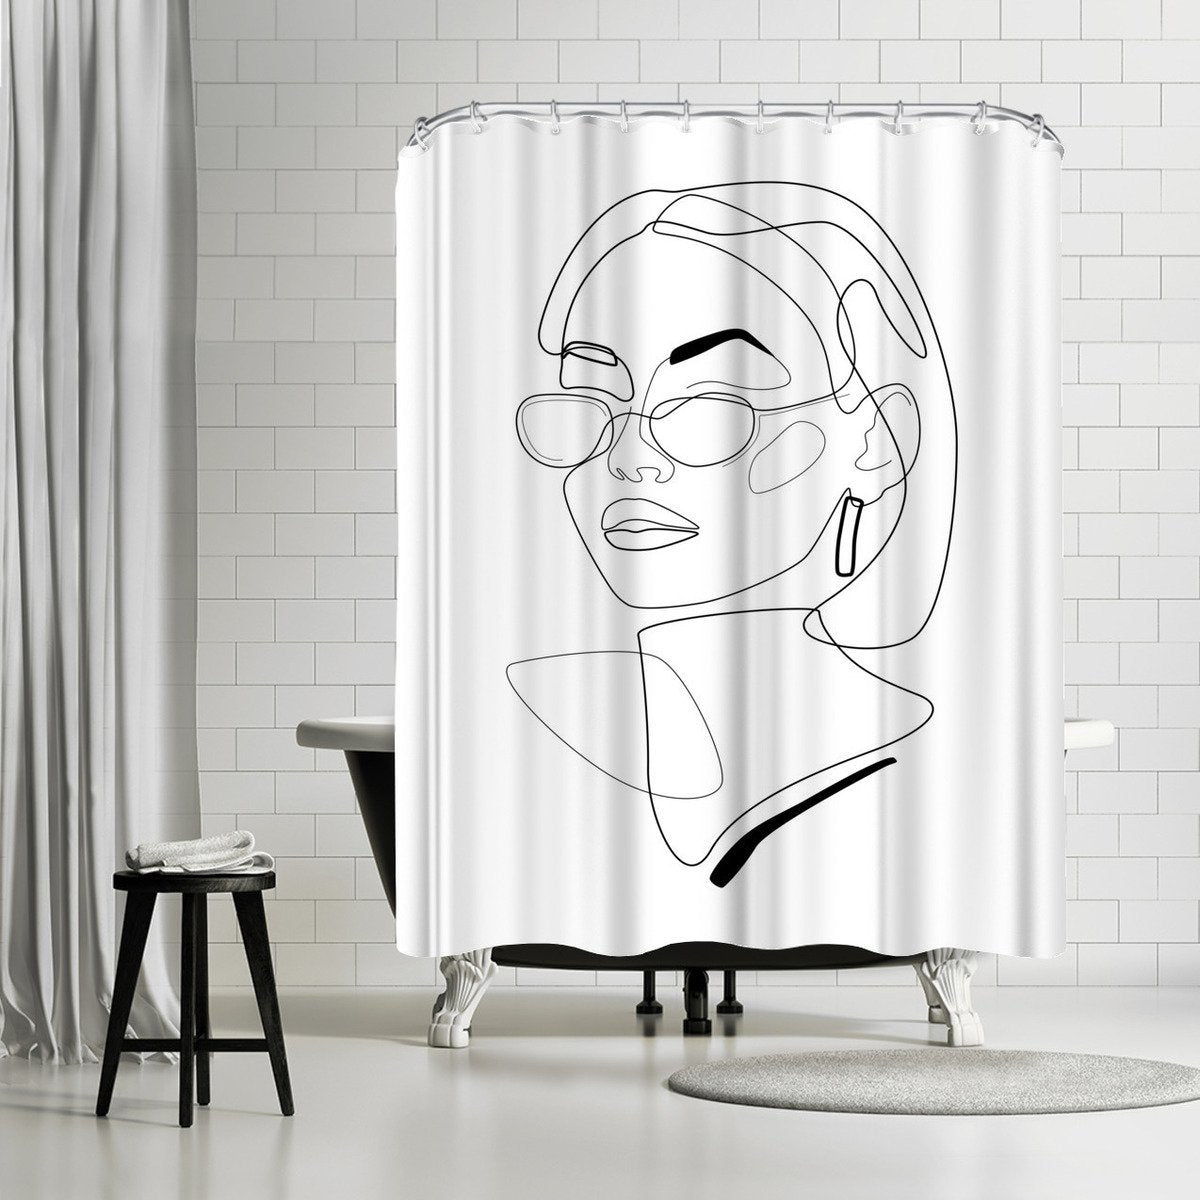 90s Look by Explicit Design Shower Curtain - Shower Curtain - Americanflat